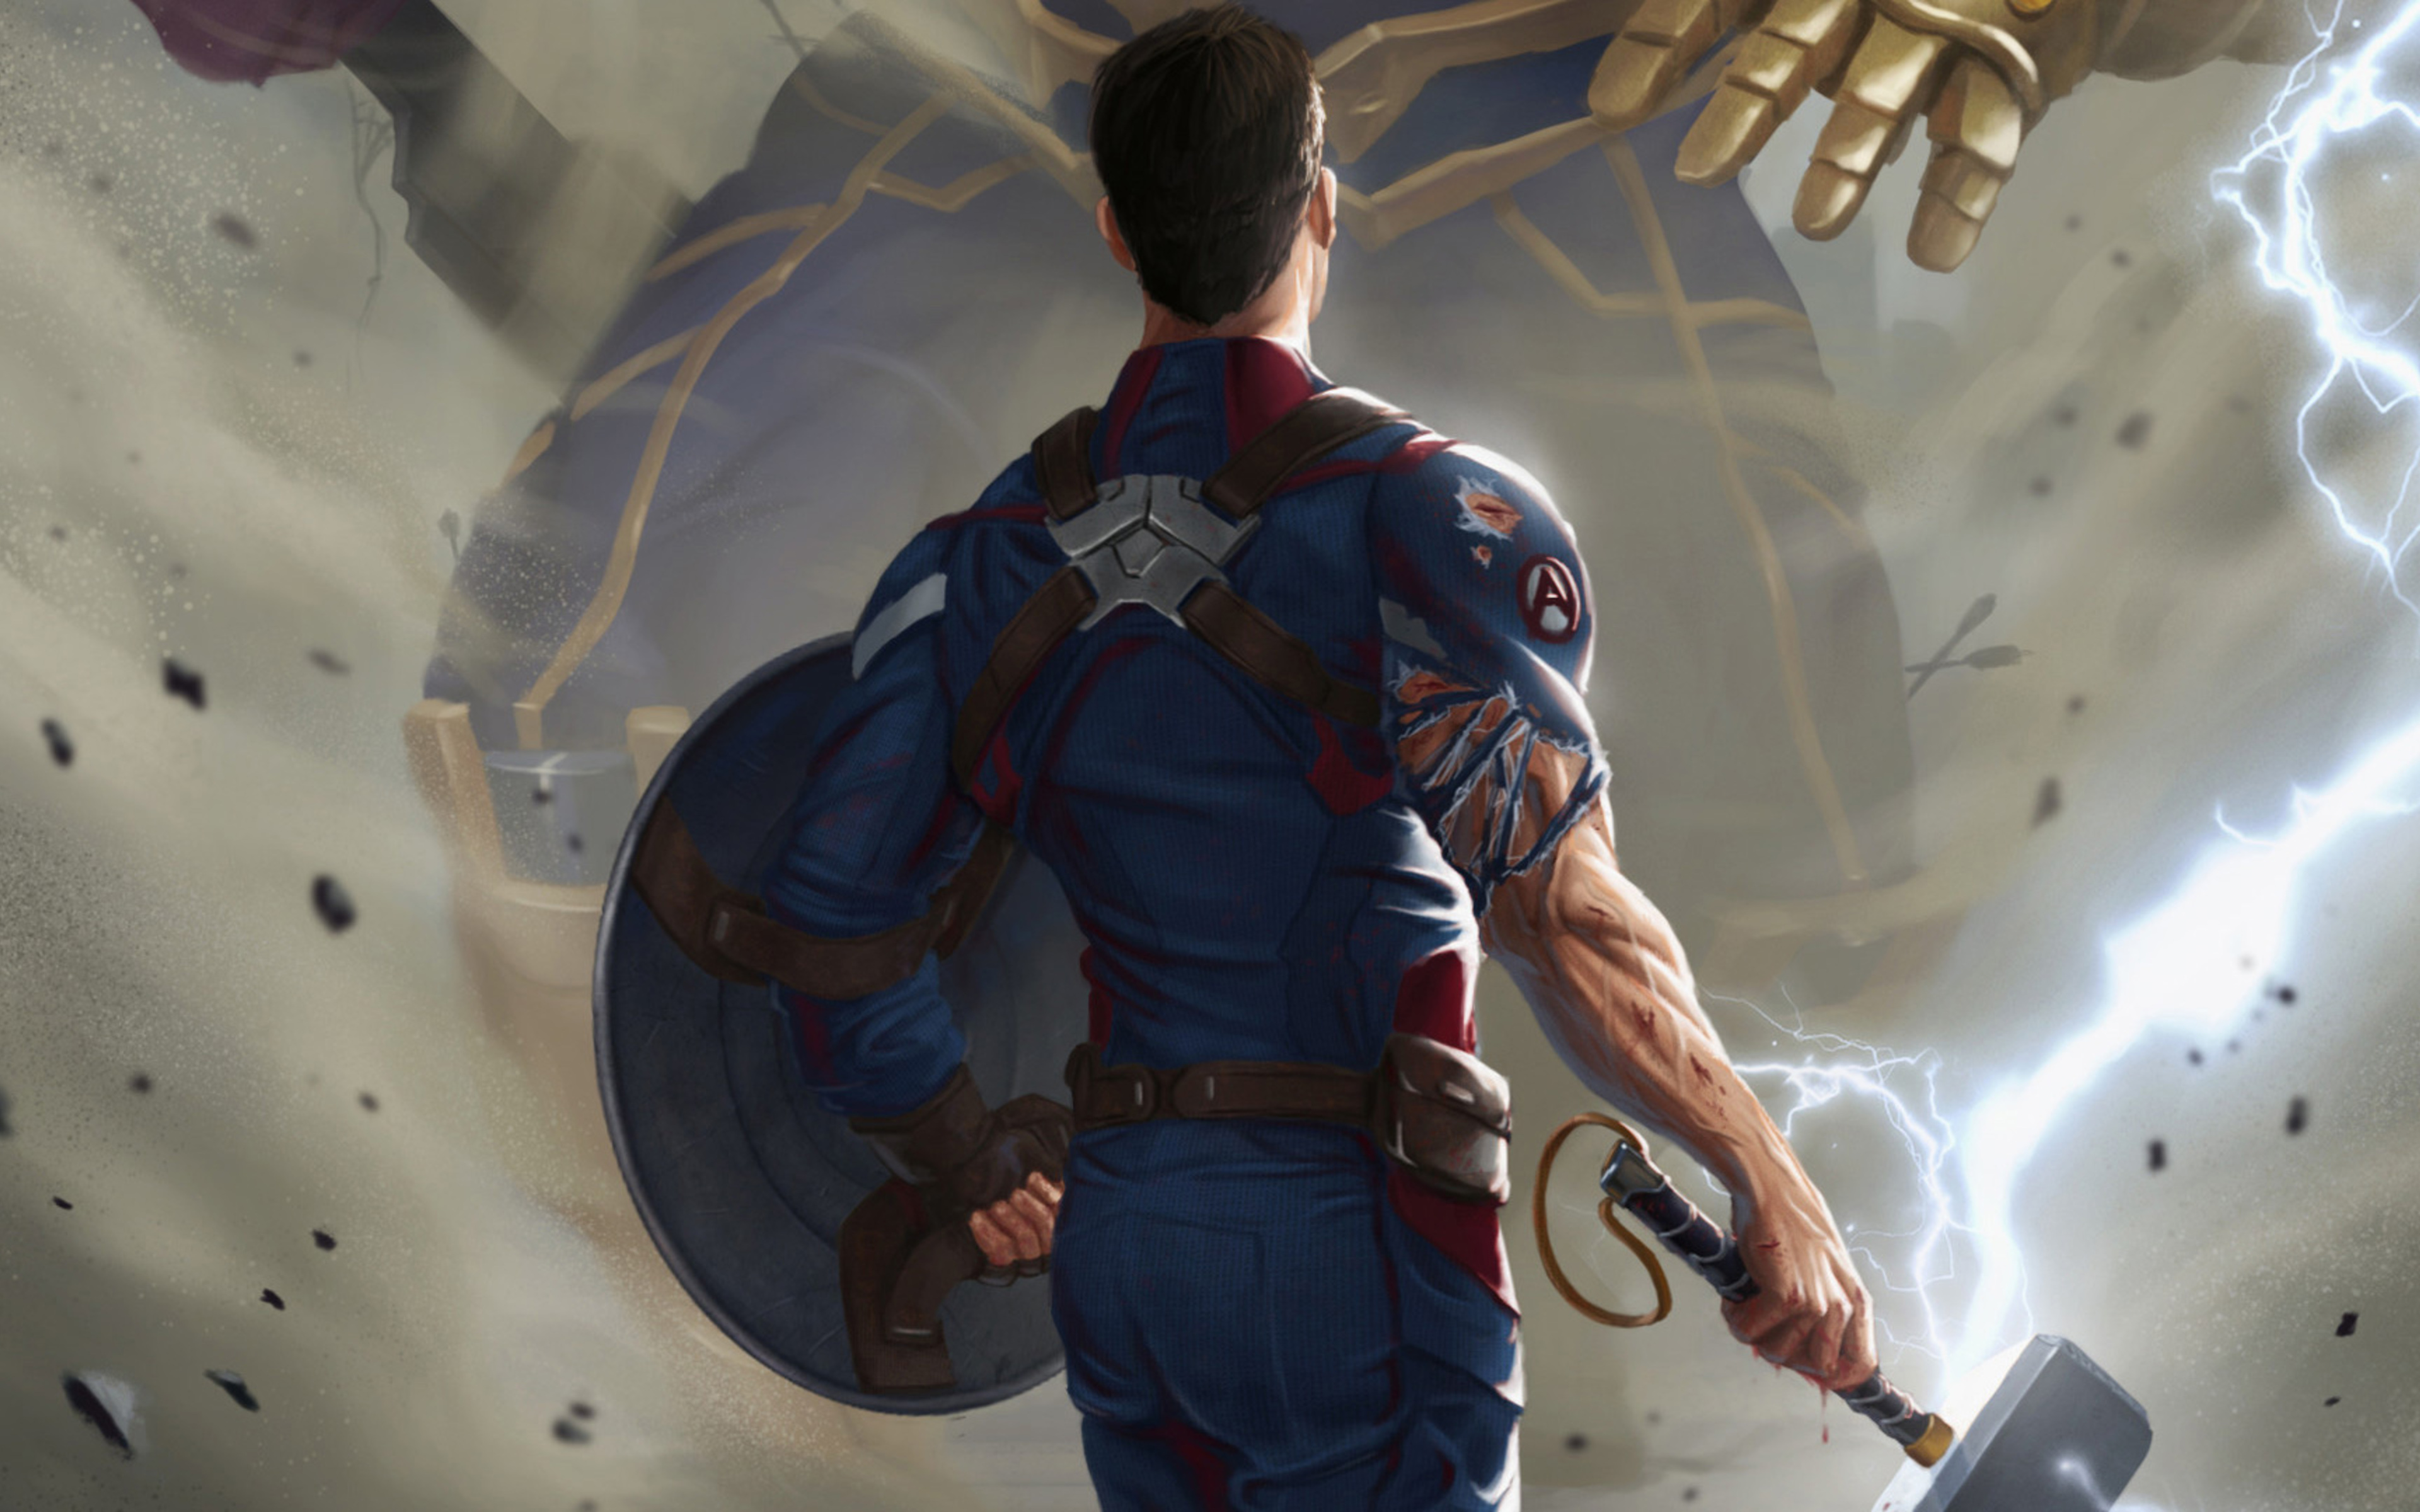 3840x2400 captain america with thor hammer 4k hd 4k wallpapers images backgrounds photos and - Thor hammer hd pics ...